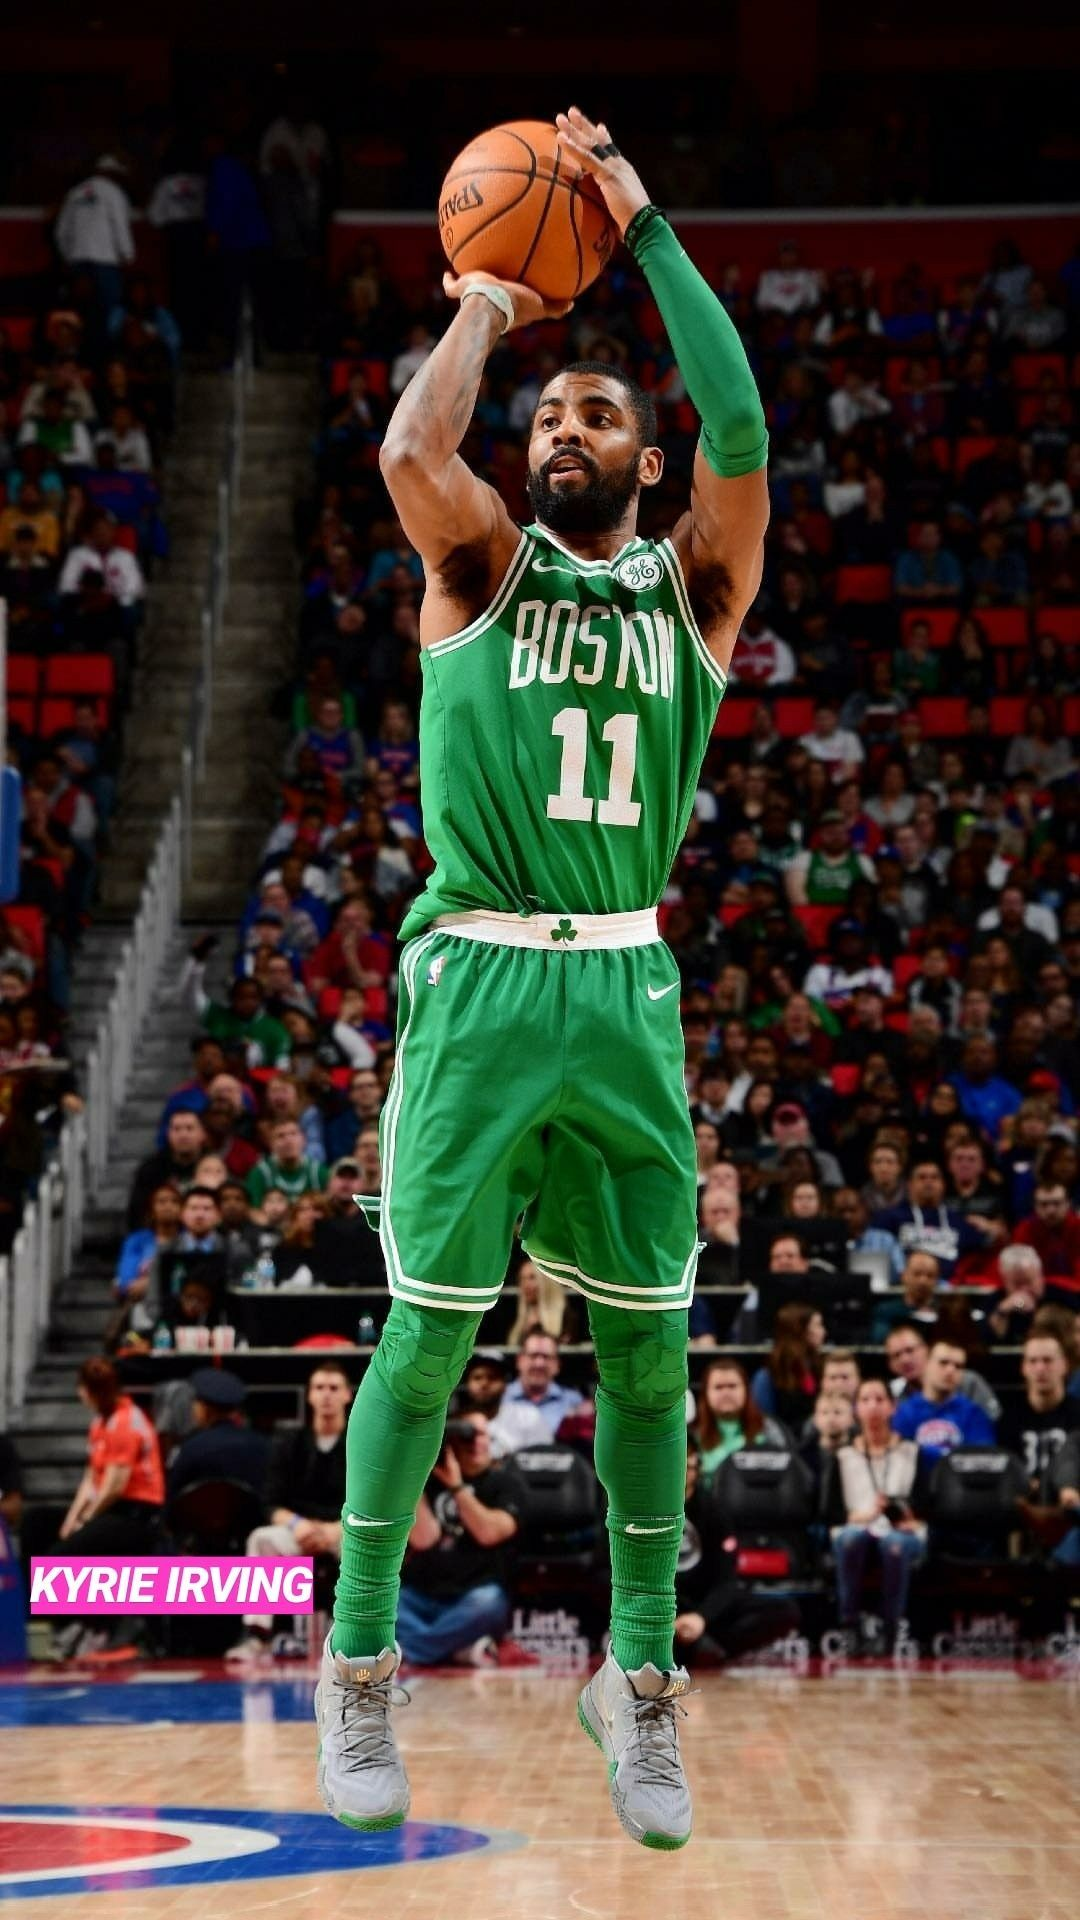 Kyrie Irving Nets Wallpaper Android Download kyrie